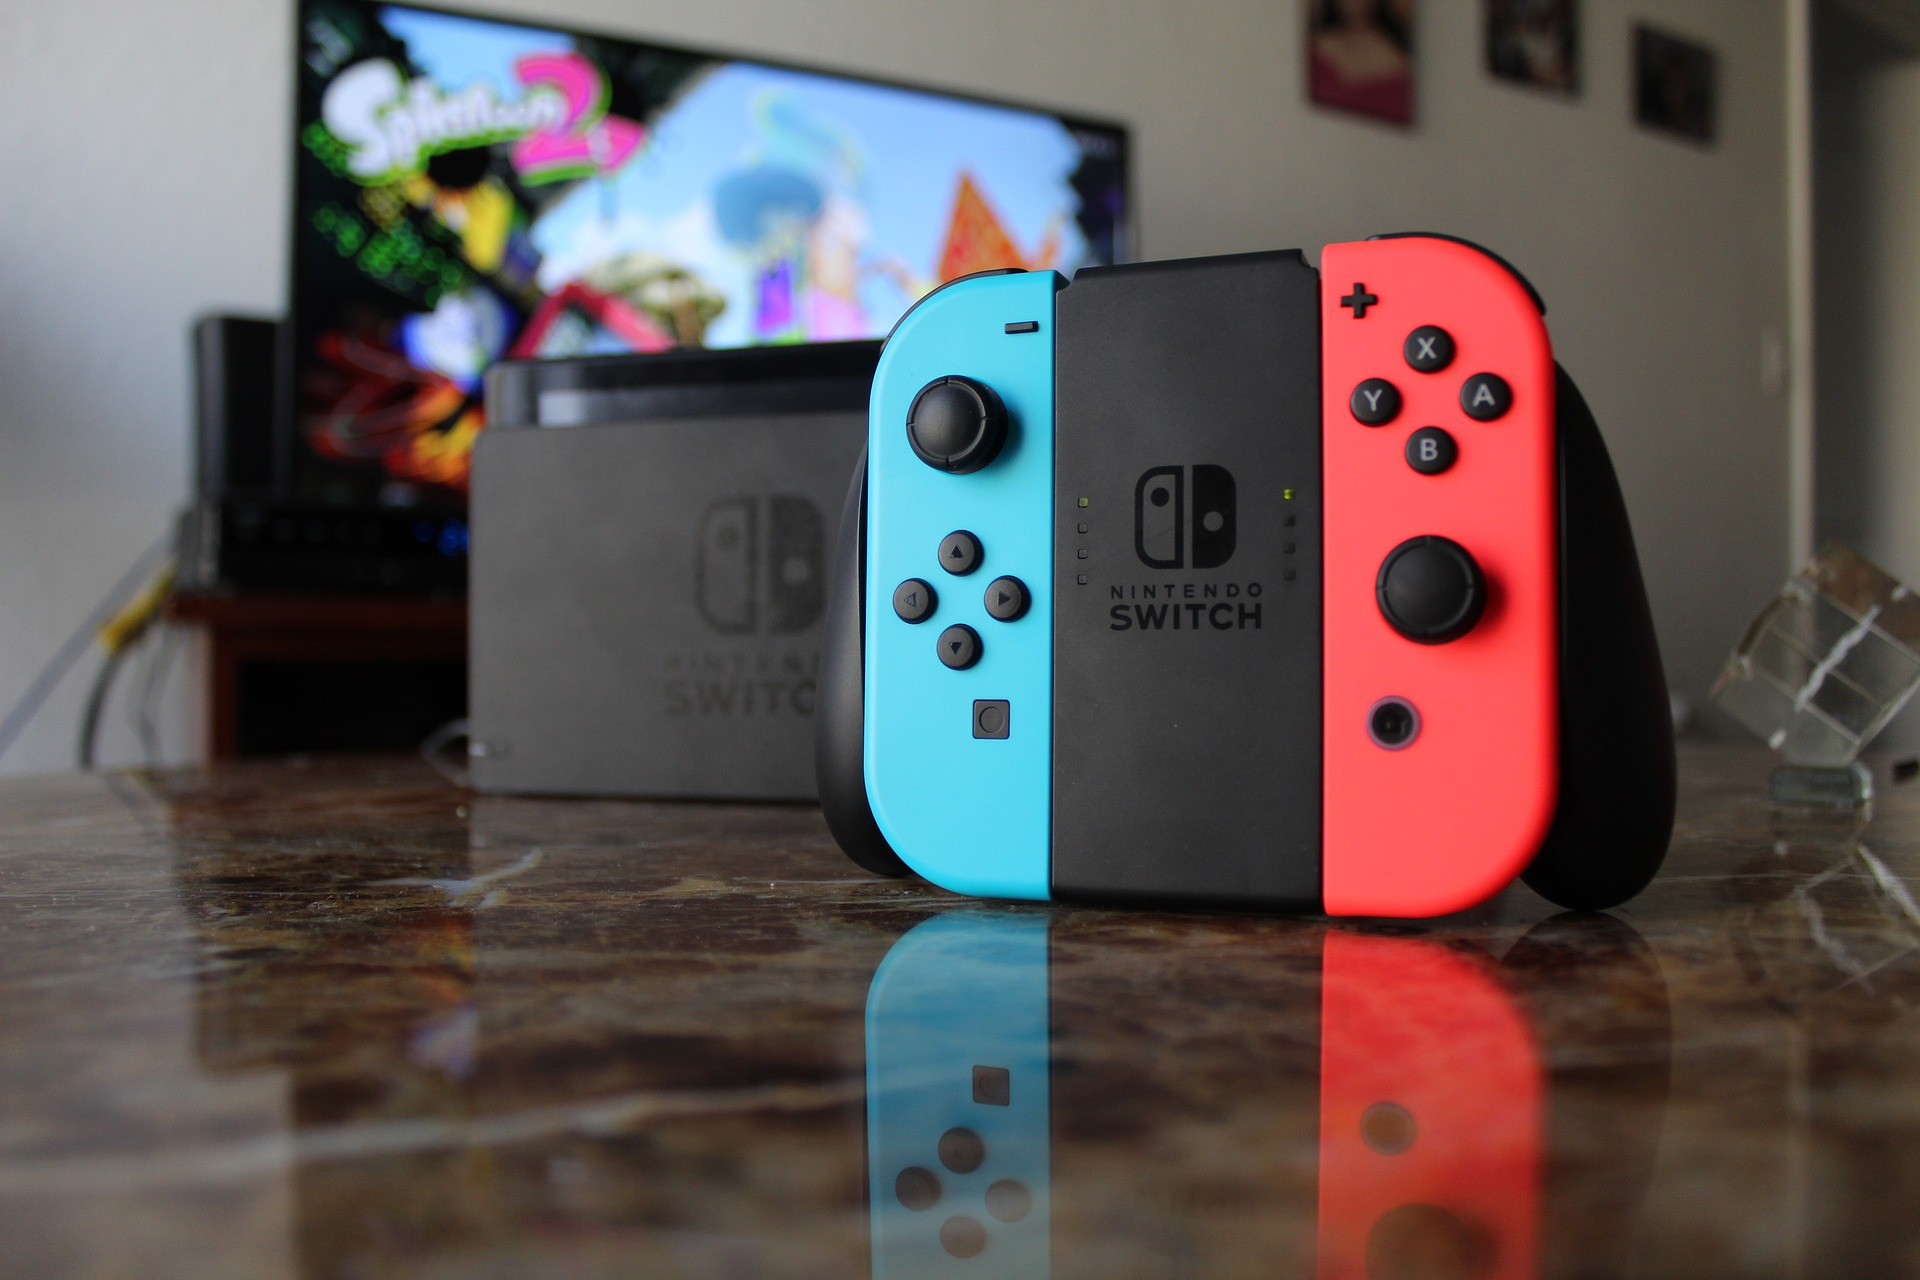 Nintendo doubles down with the Switch 2 and Switch Lite